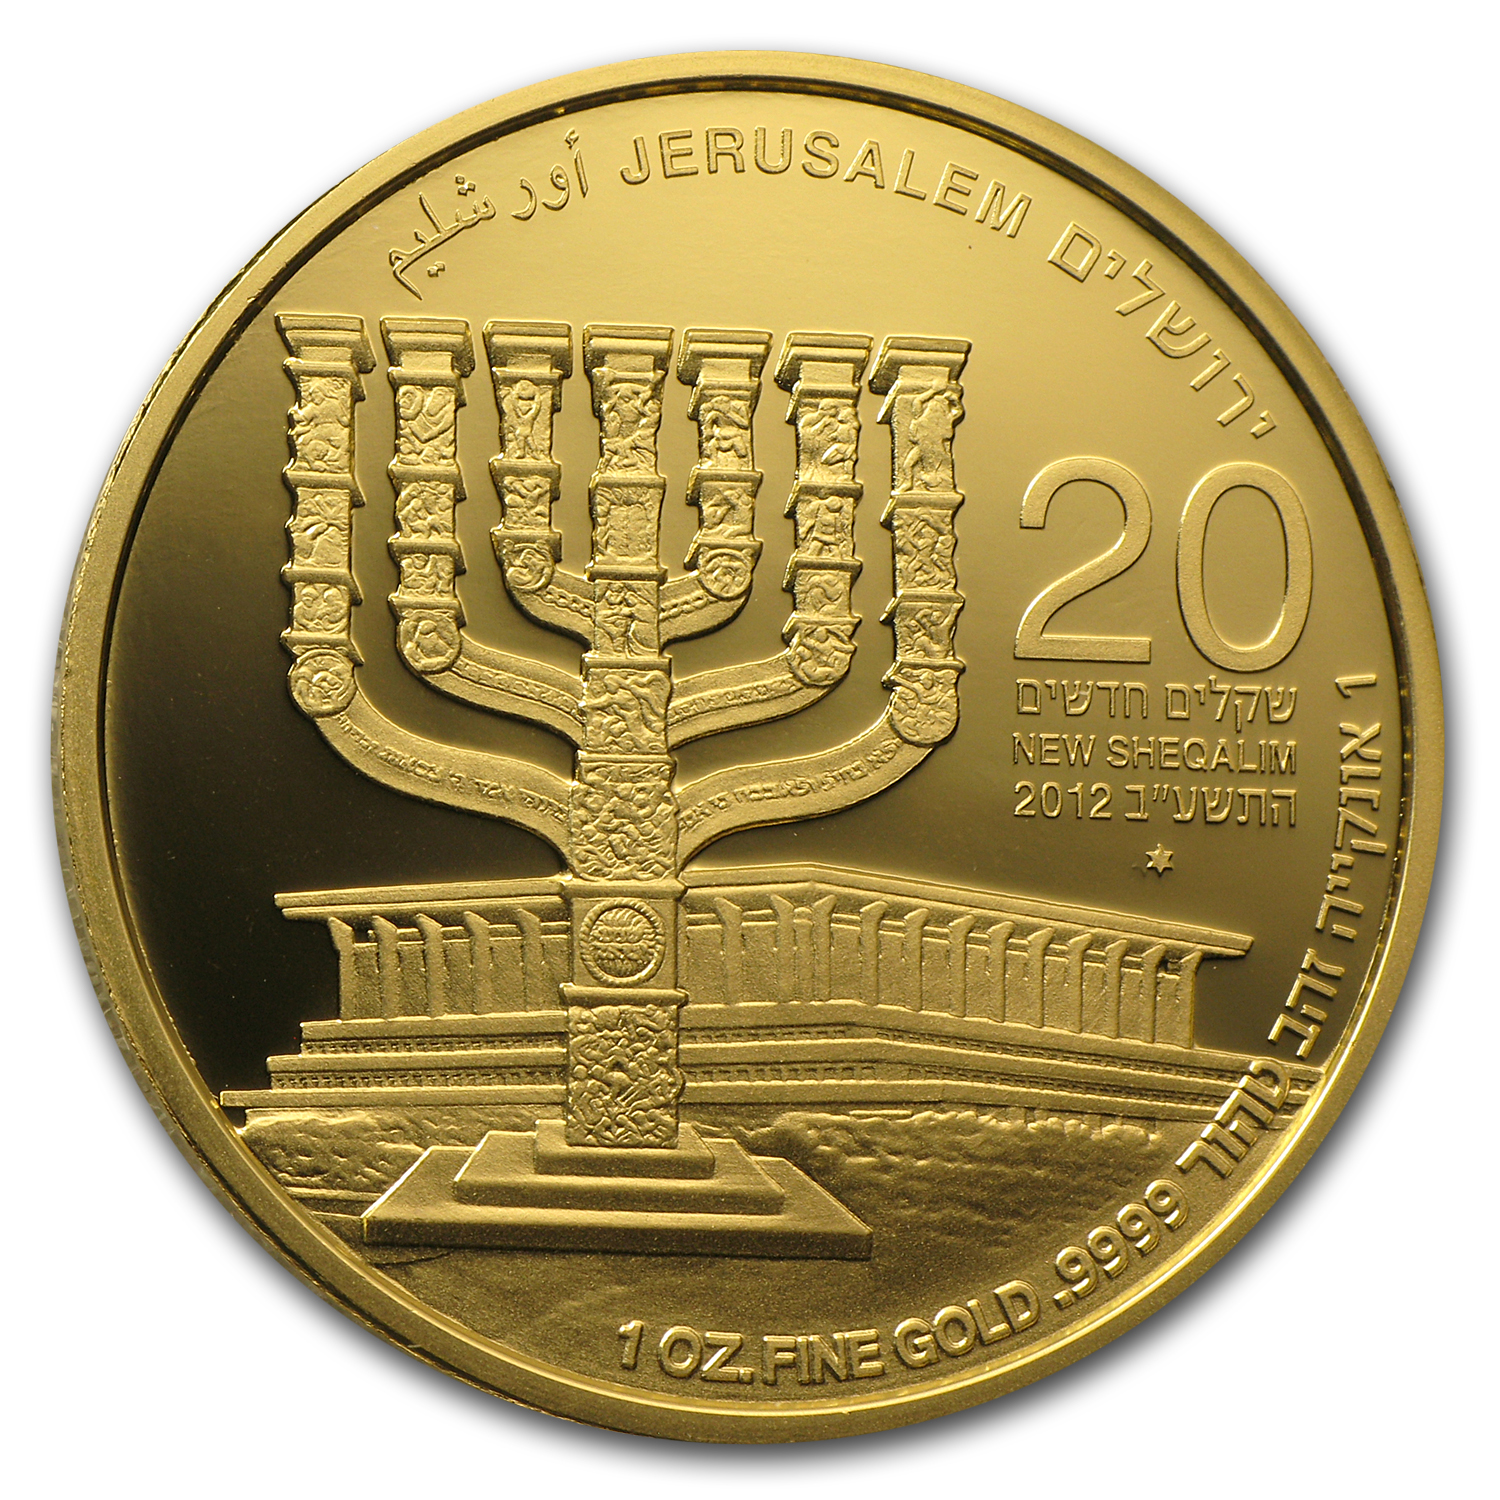 2012 Israel 1 oz Gold Menorah BU